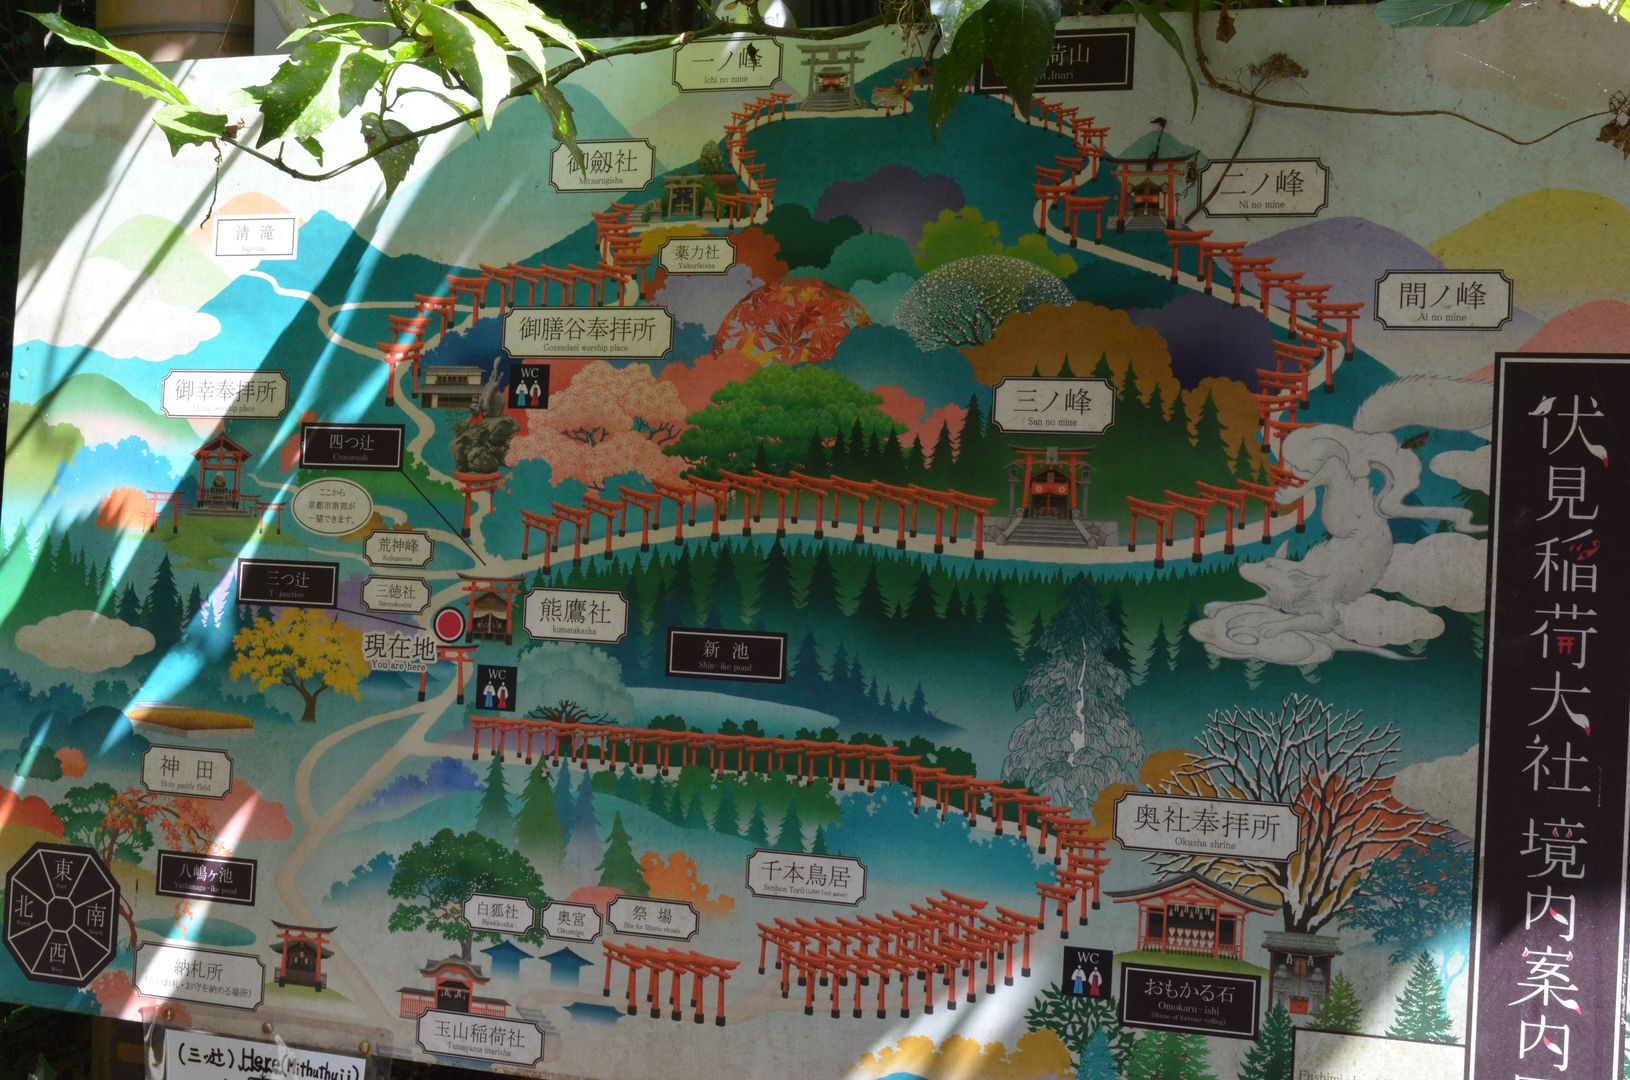 map of Fushimi Inari Taisha, Kyoto